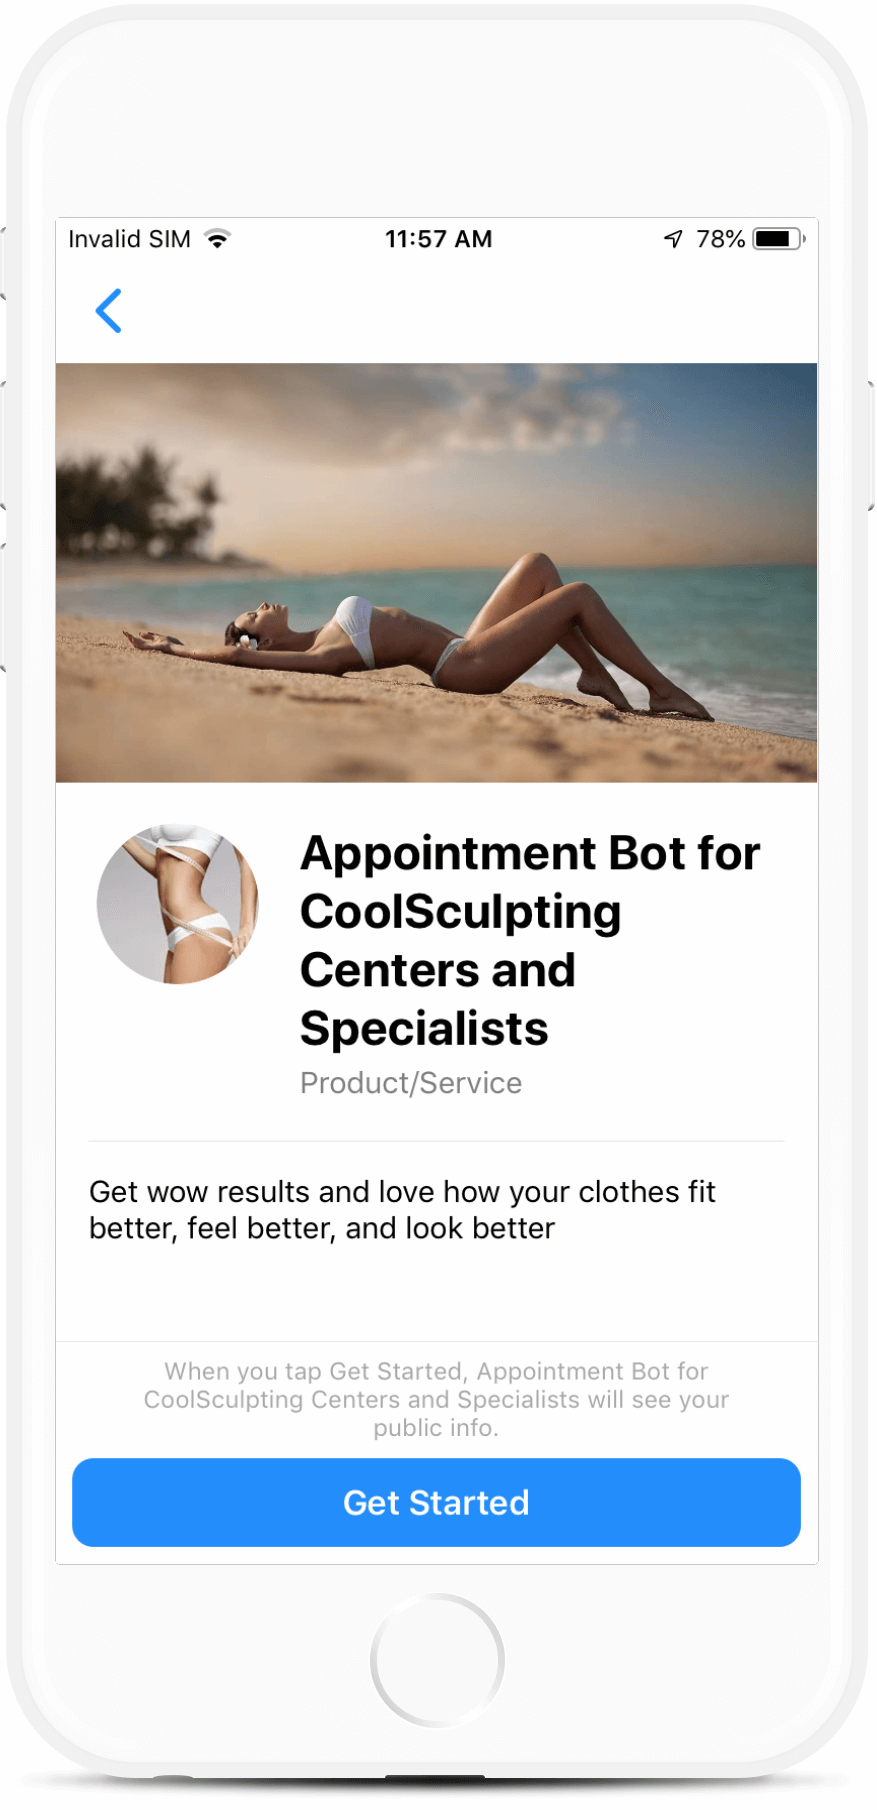 CoolSculpting Center bot screenshot